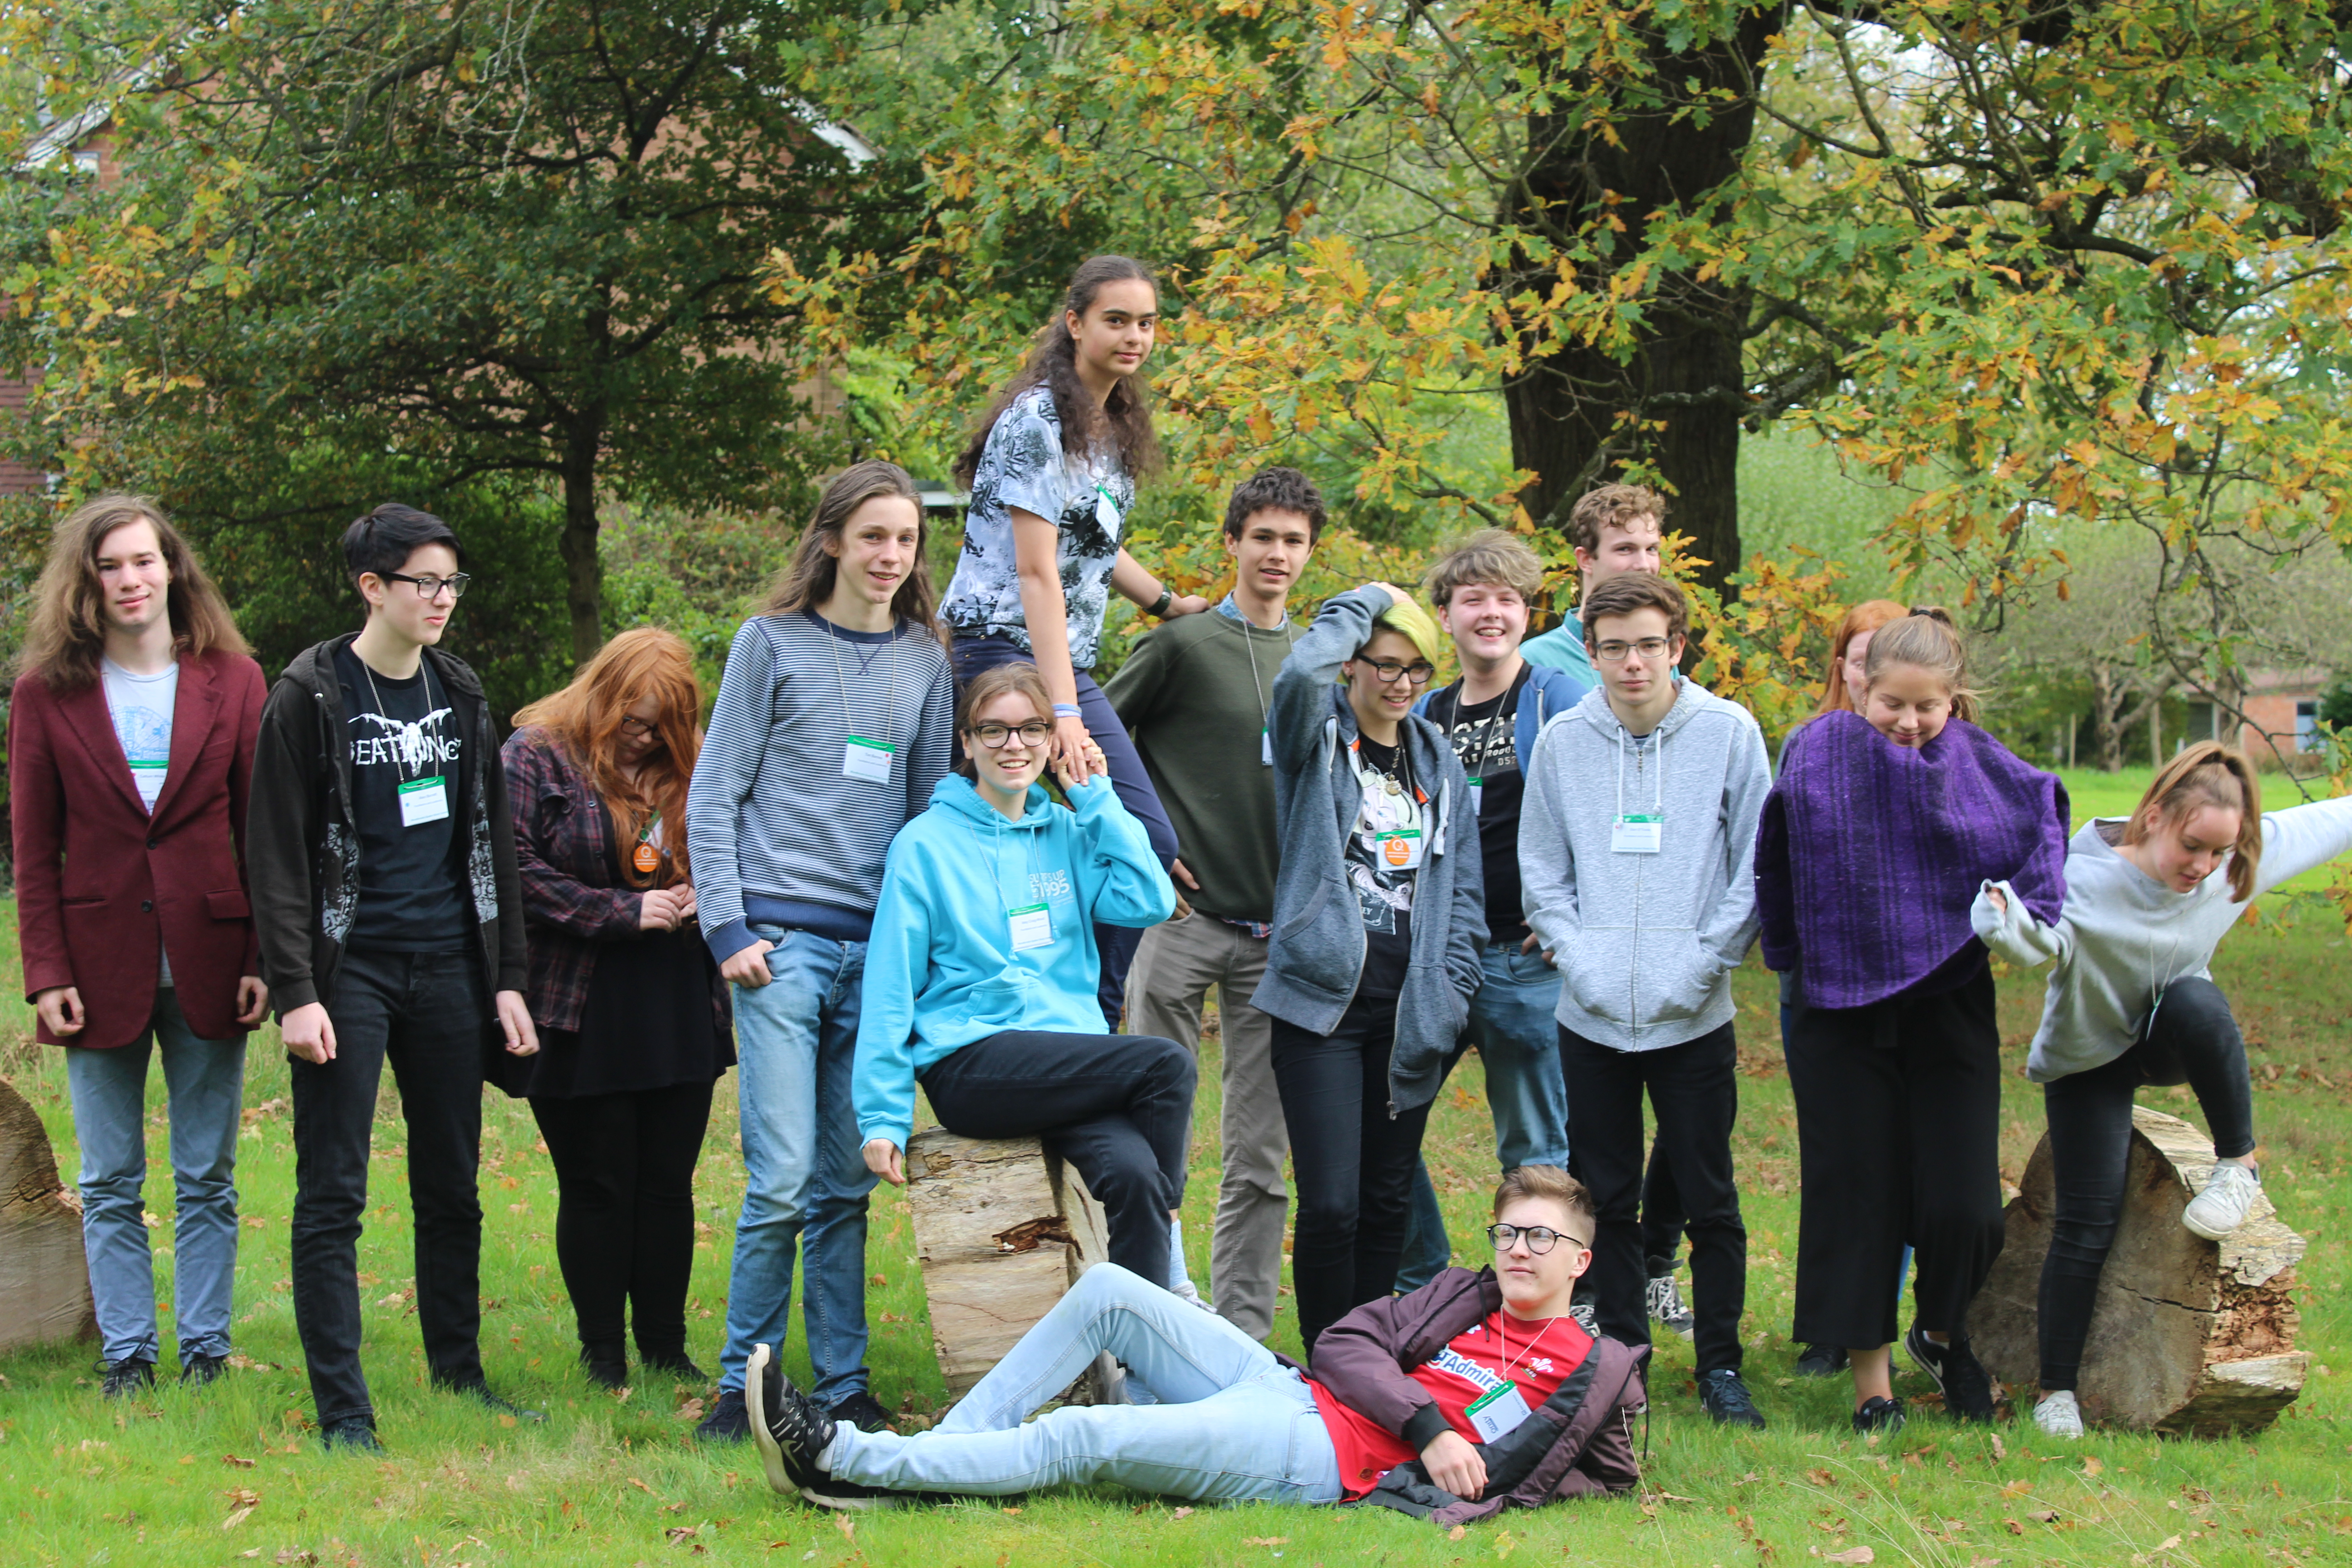 Group of young people posing in a garden in autumn